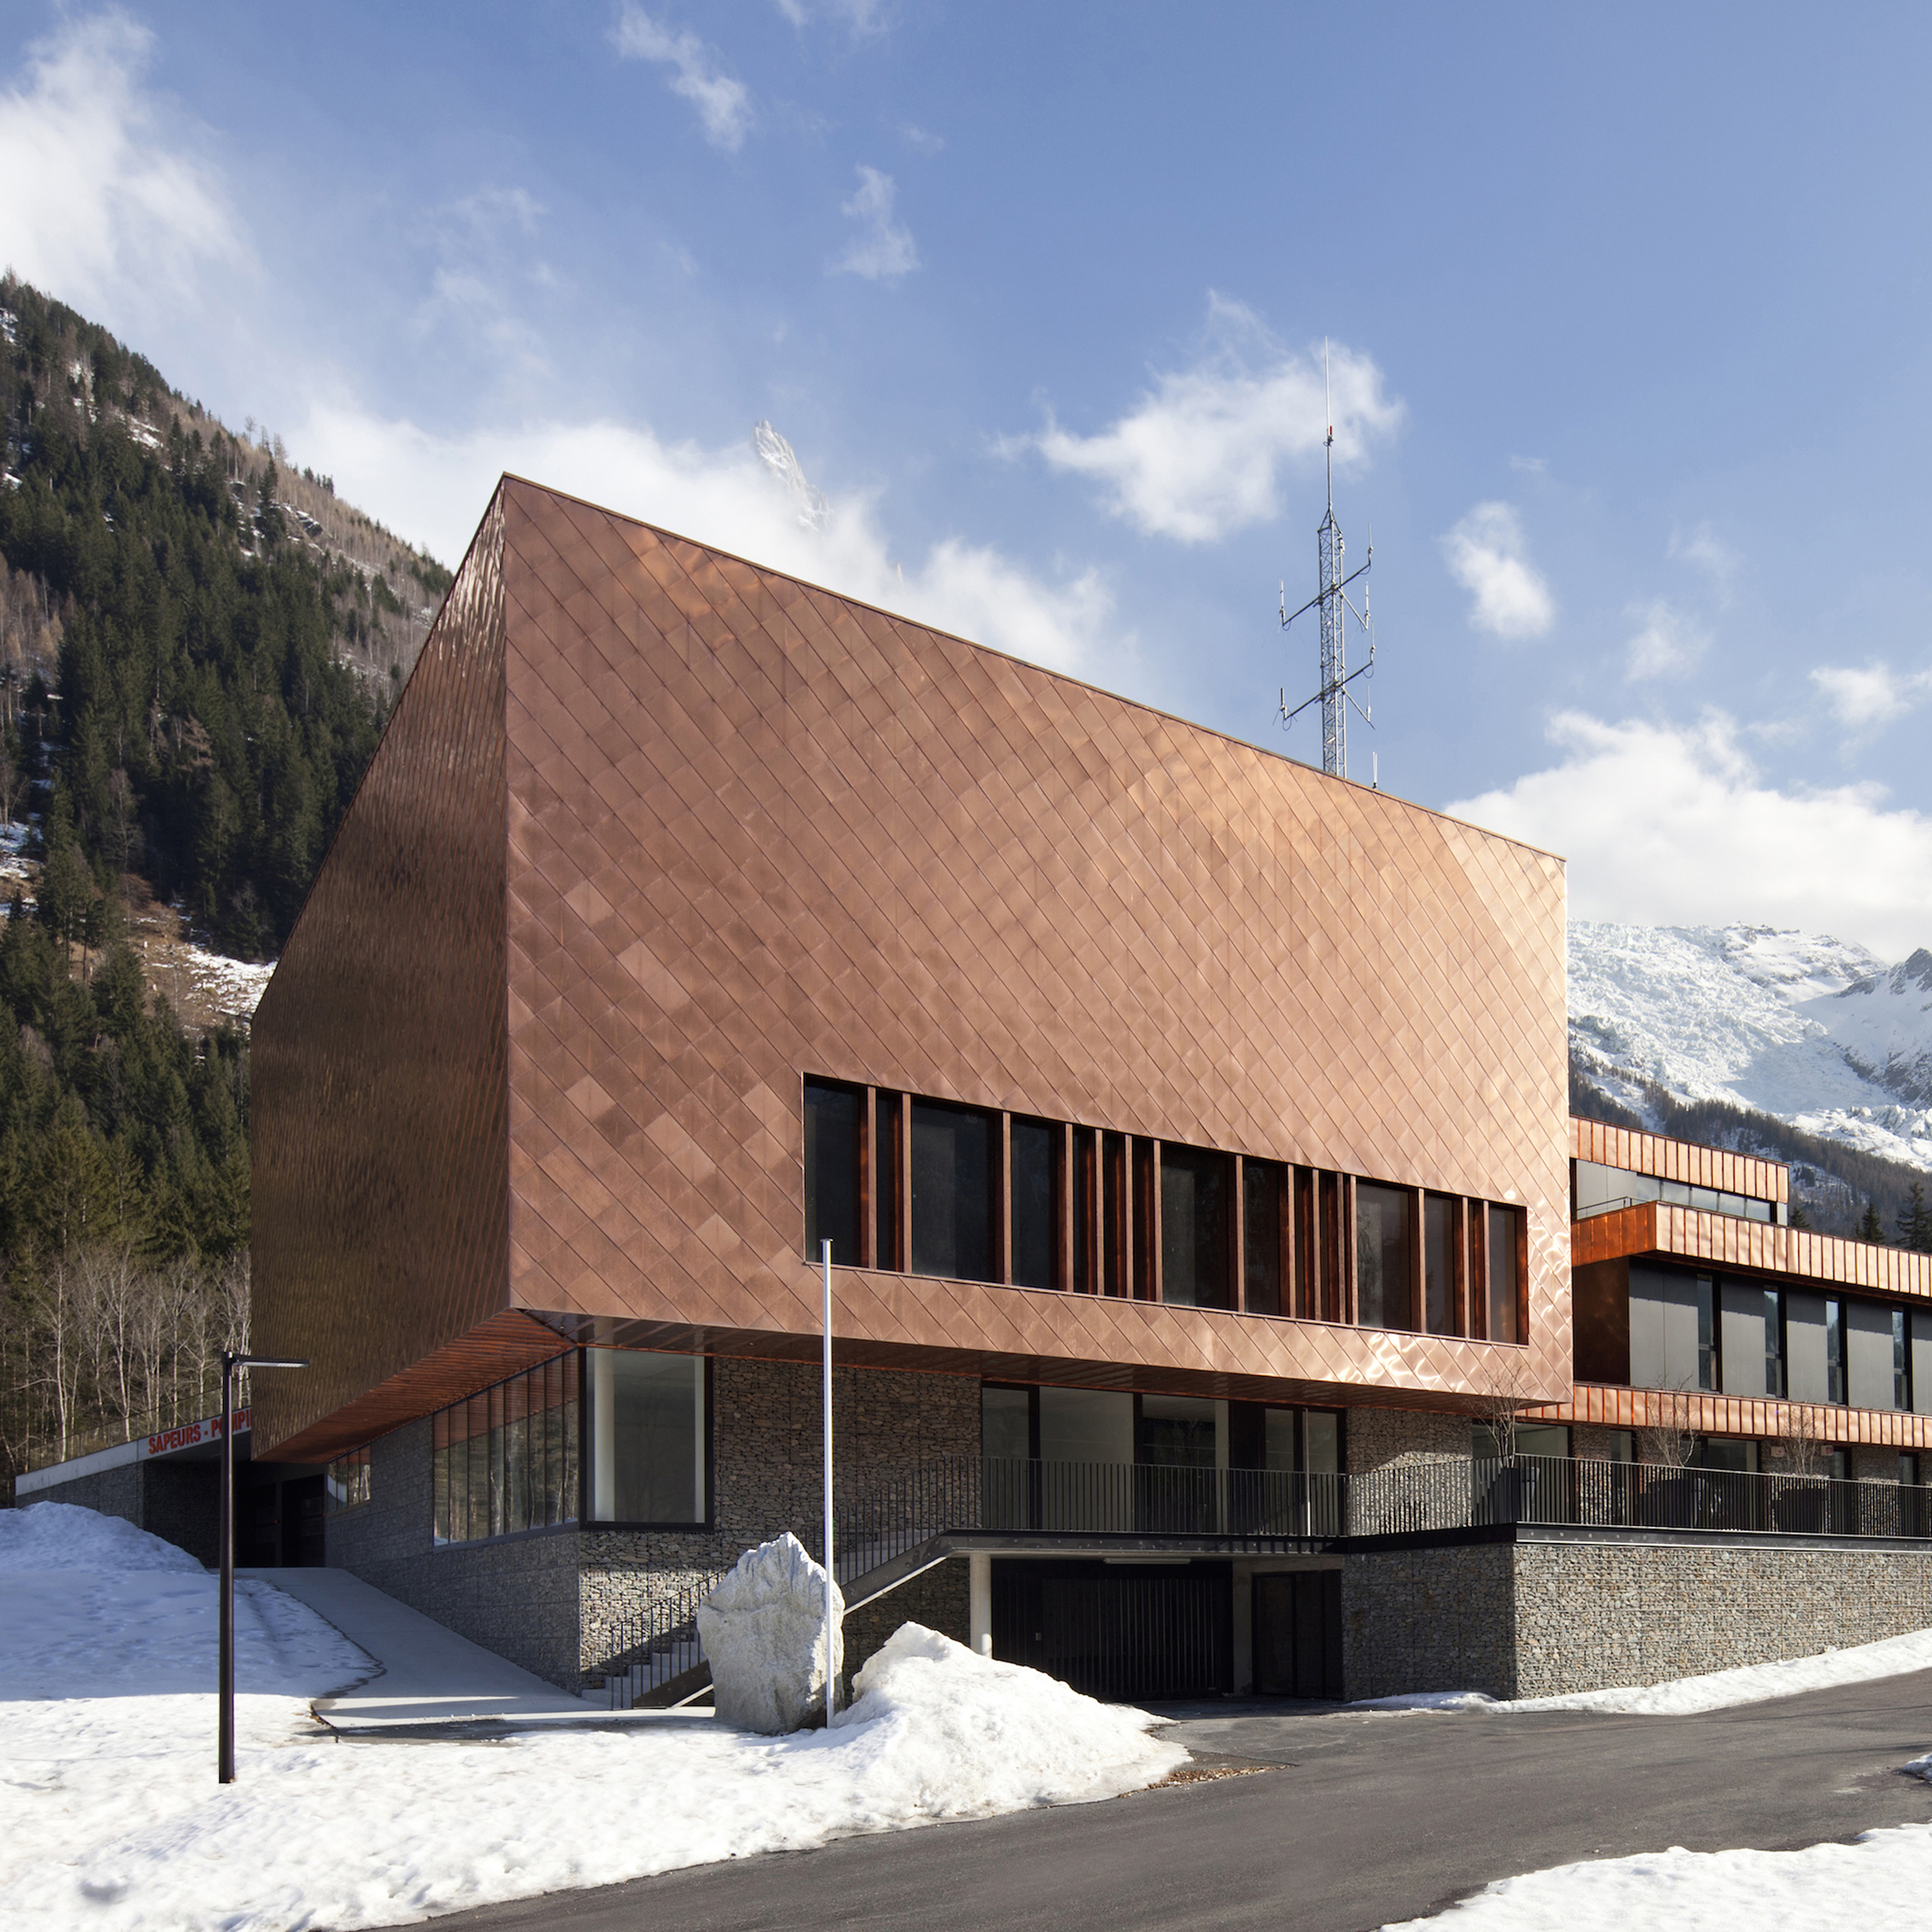 Wonderful Copper Scales Cover Fire Station In French Alps By Studio Gardoni  Architectures Idea